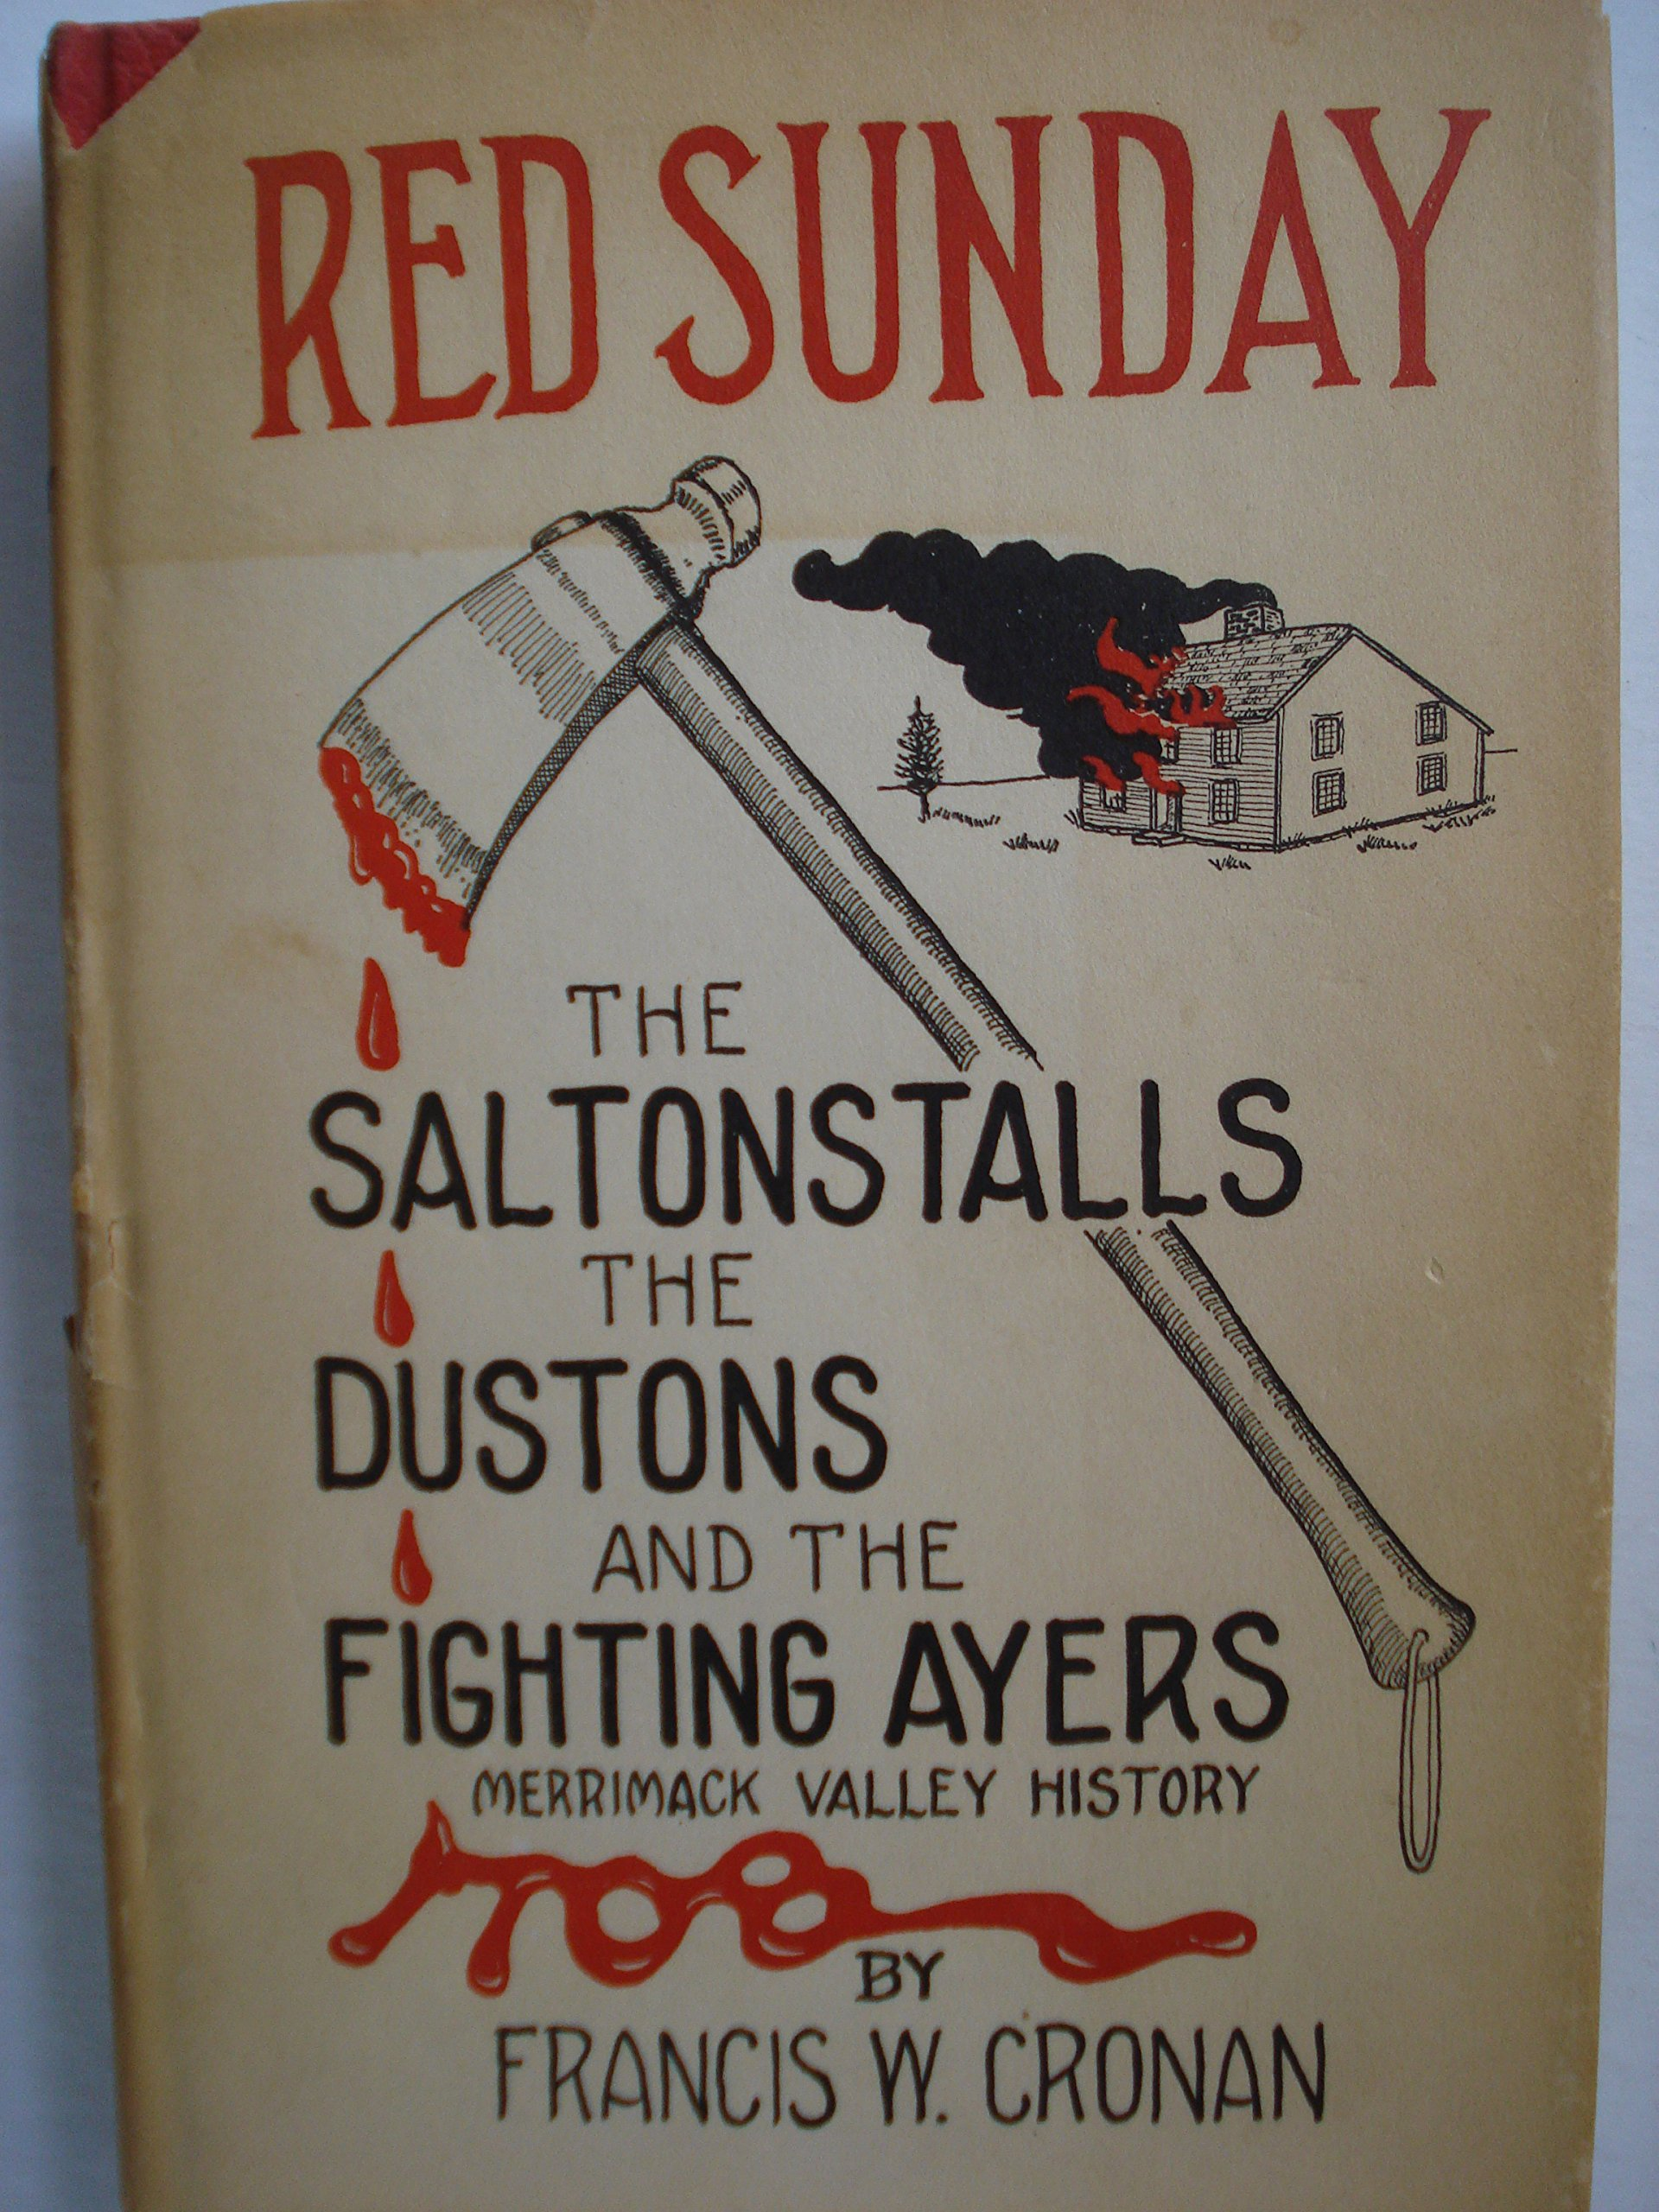 RED SUNDAY: THE SALTONSTALLS, THE DUSTONS, AND THE FIGHTING AYERS - MERRIMACK VALLEY HISTORY, Cronan, Francis W.